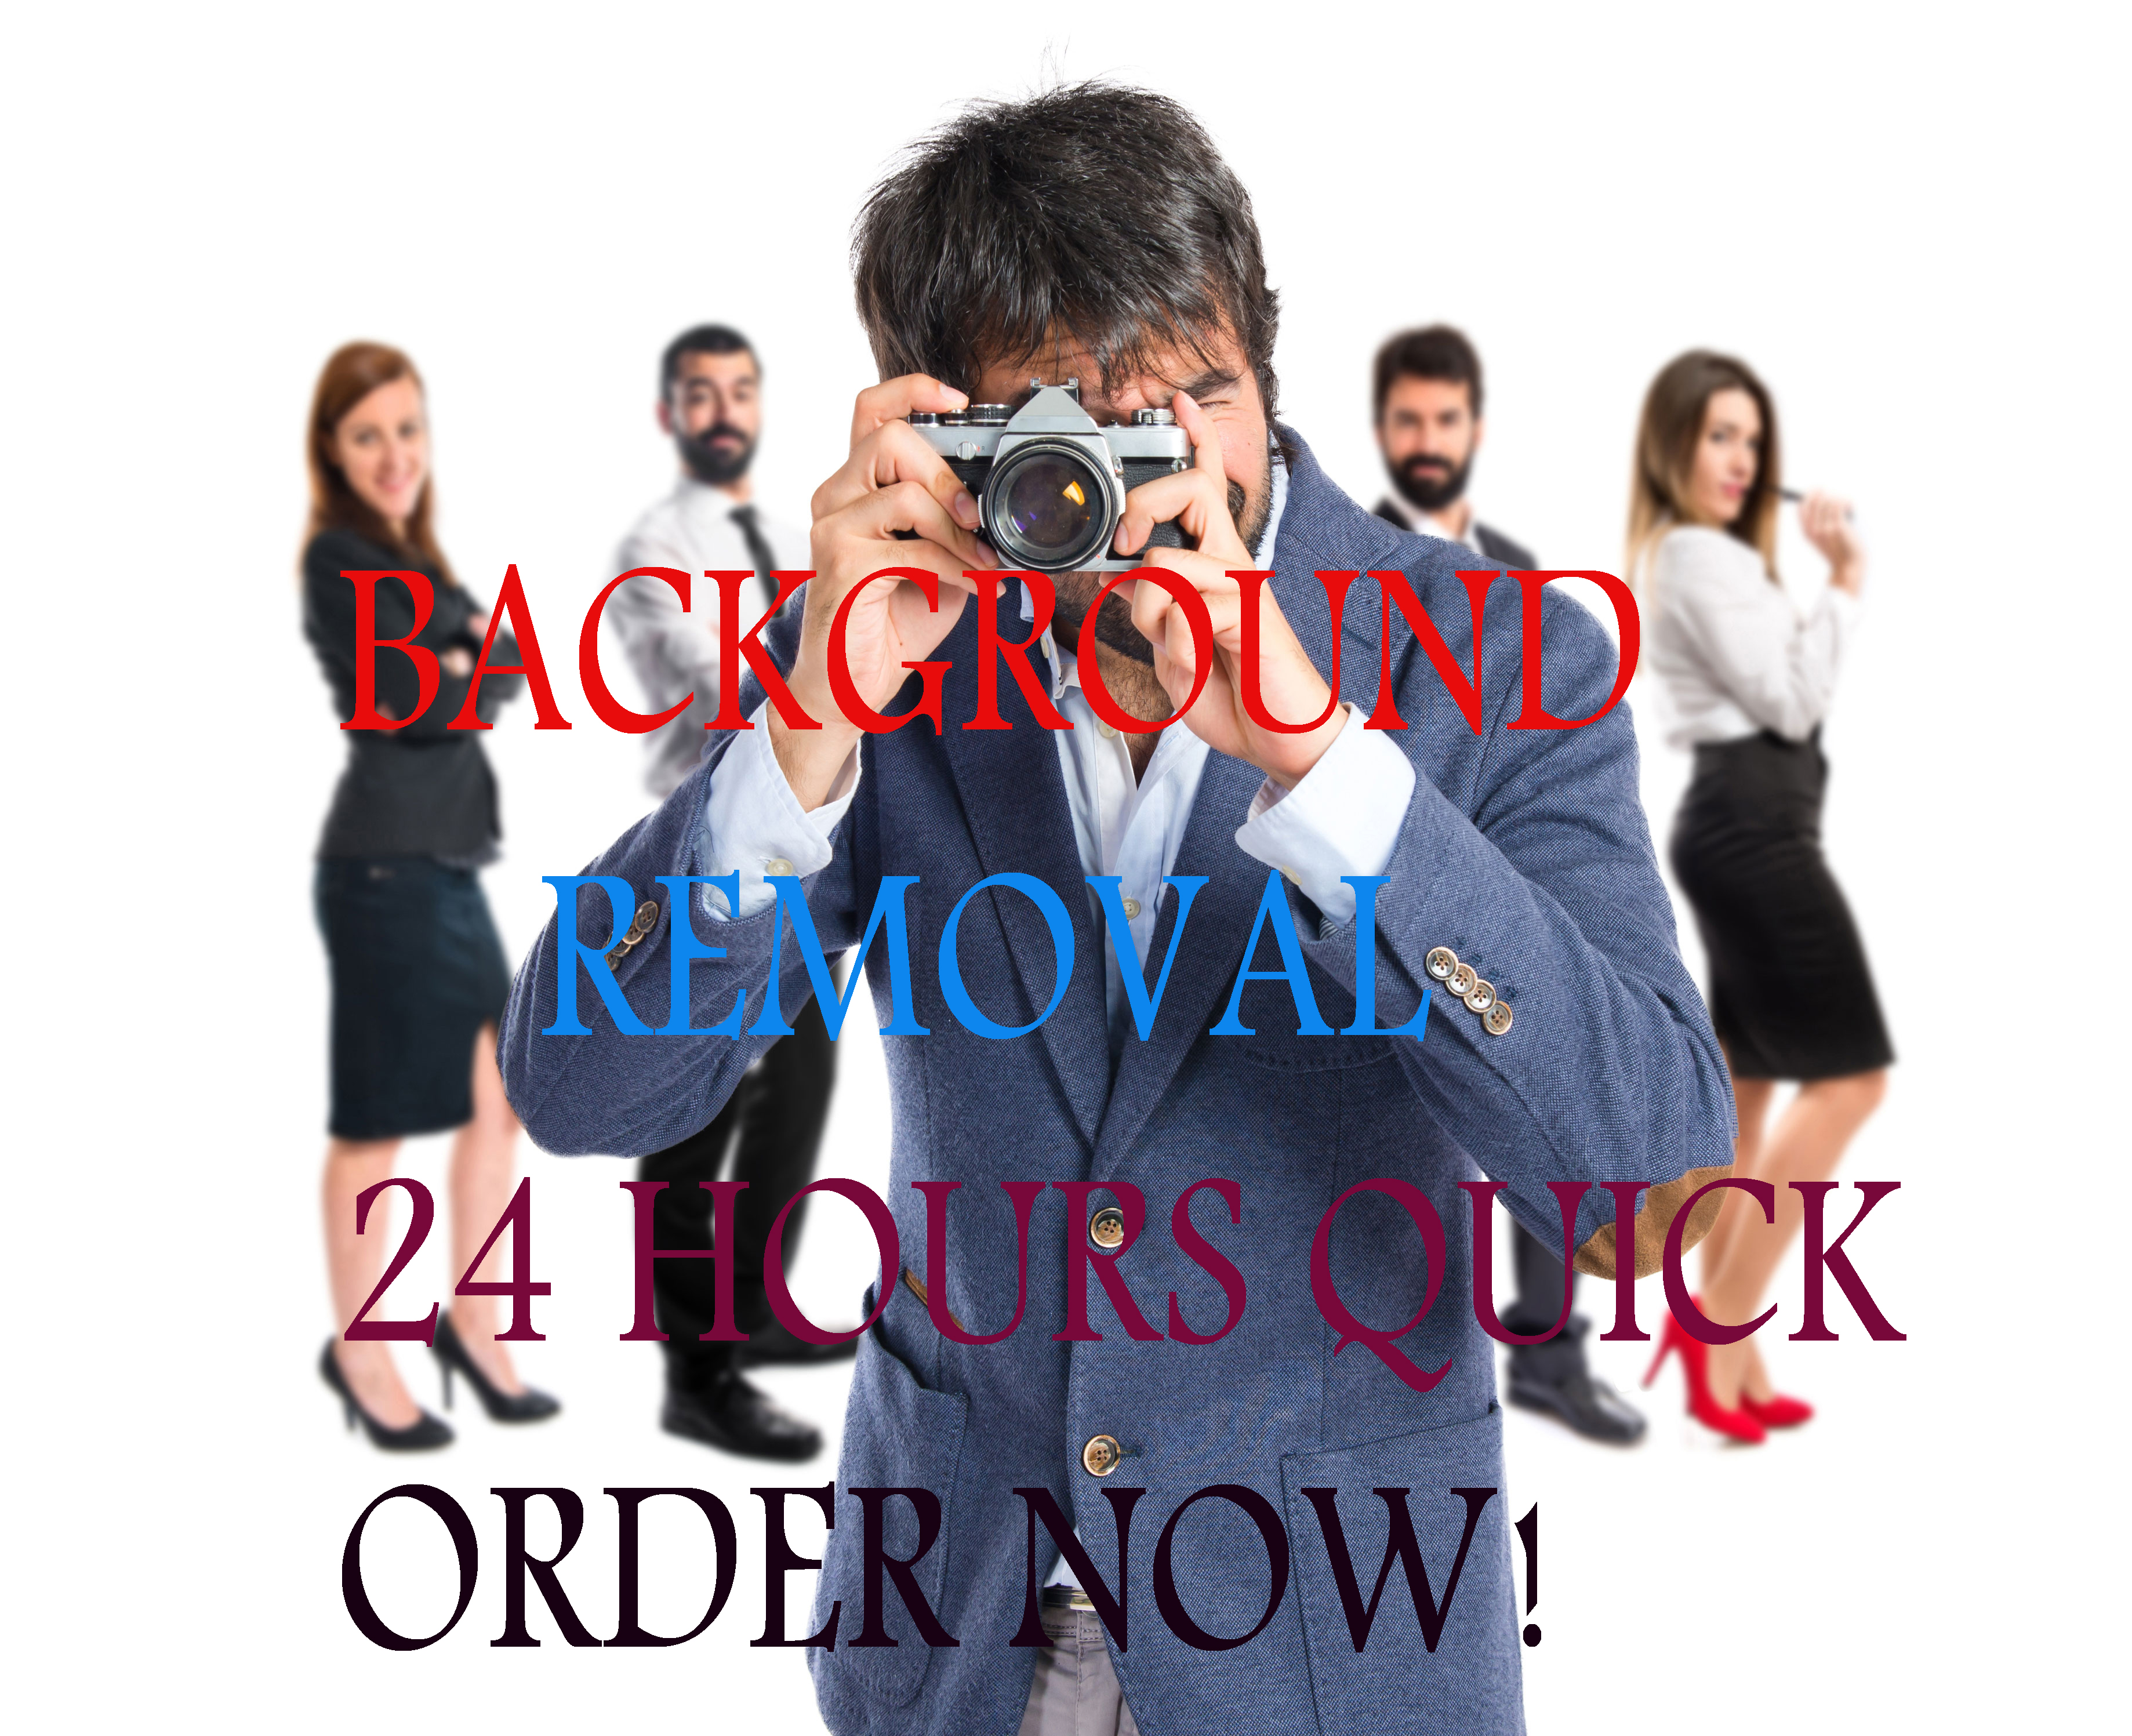 'I Will' Remove 50 Images Background Within3 hours